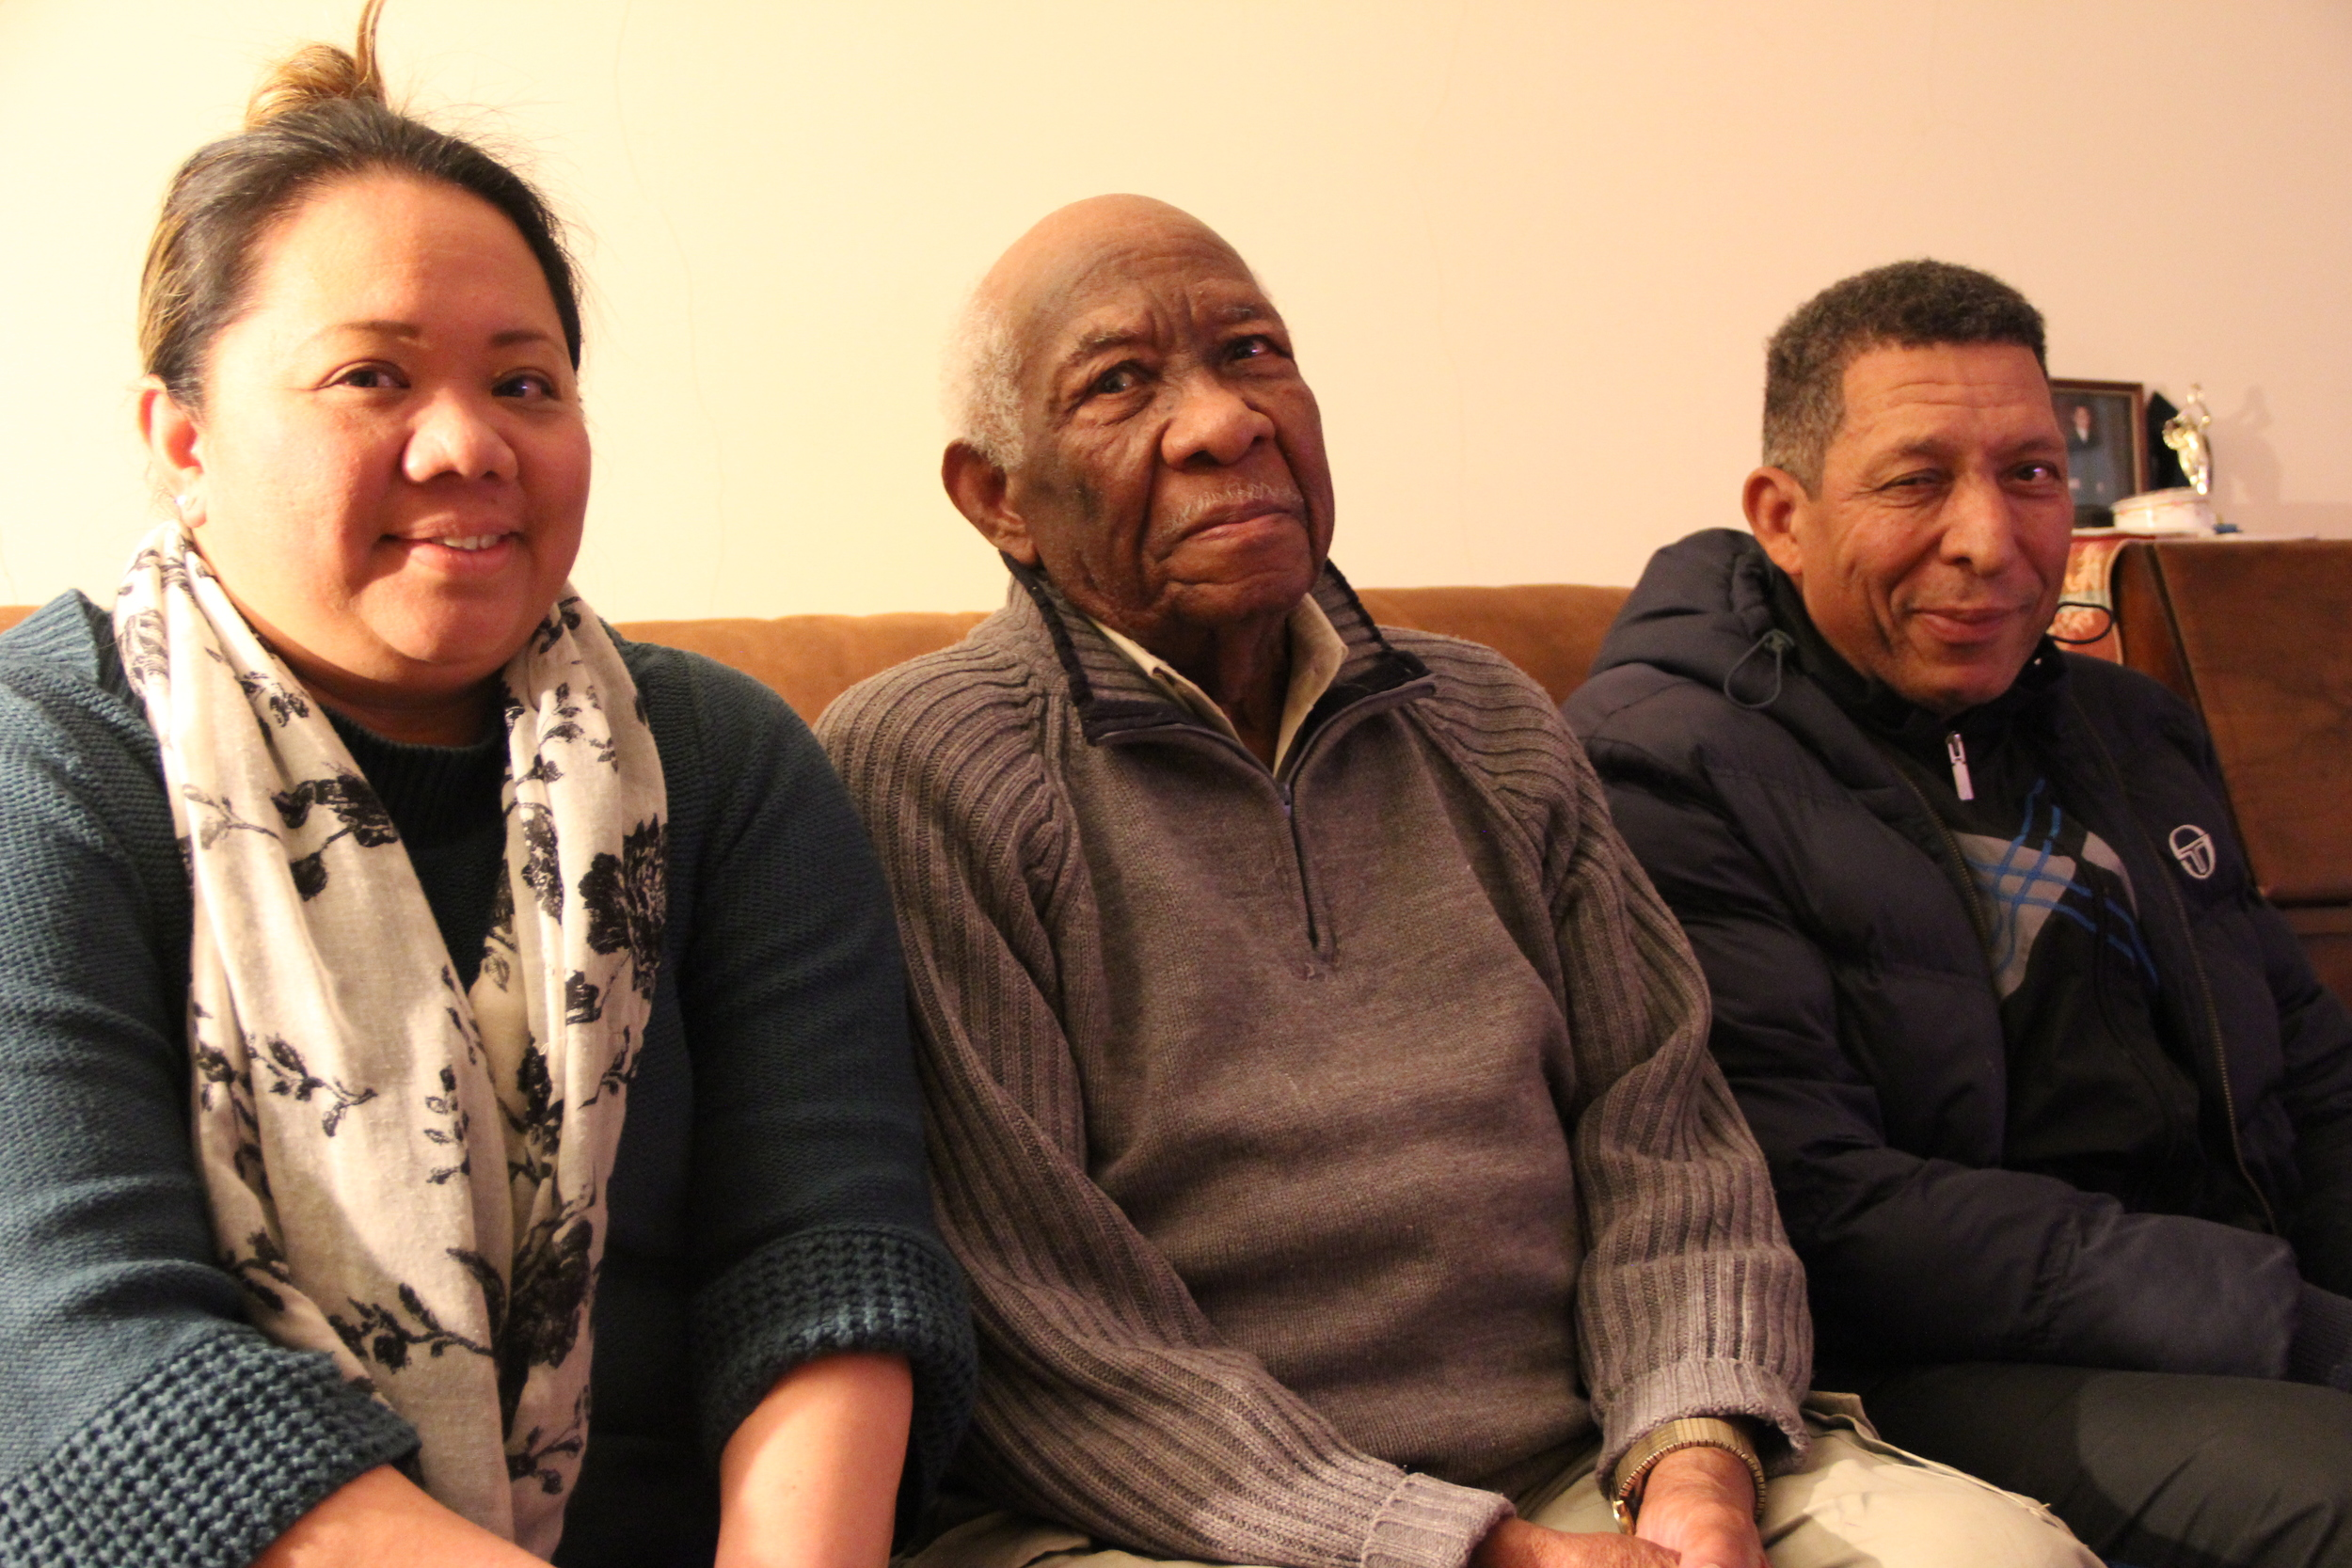 Mia, Maurice and Maurice's father, who is finally accepting Maurice's career choice aged 96!